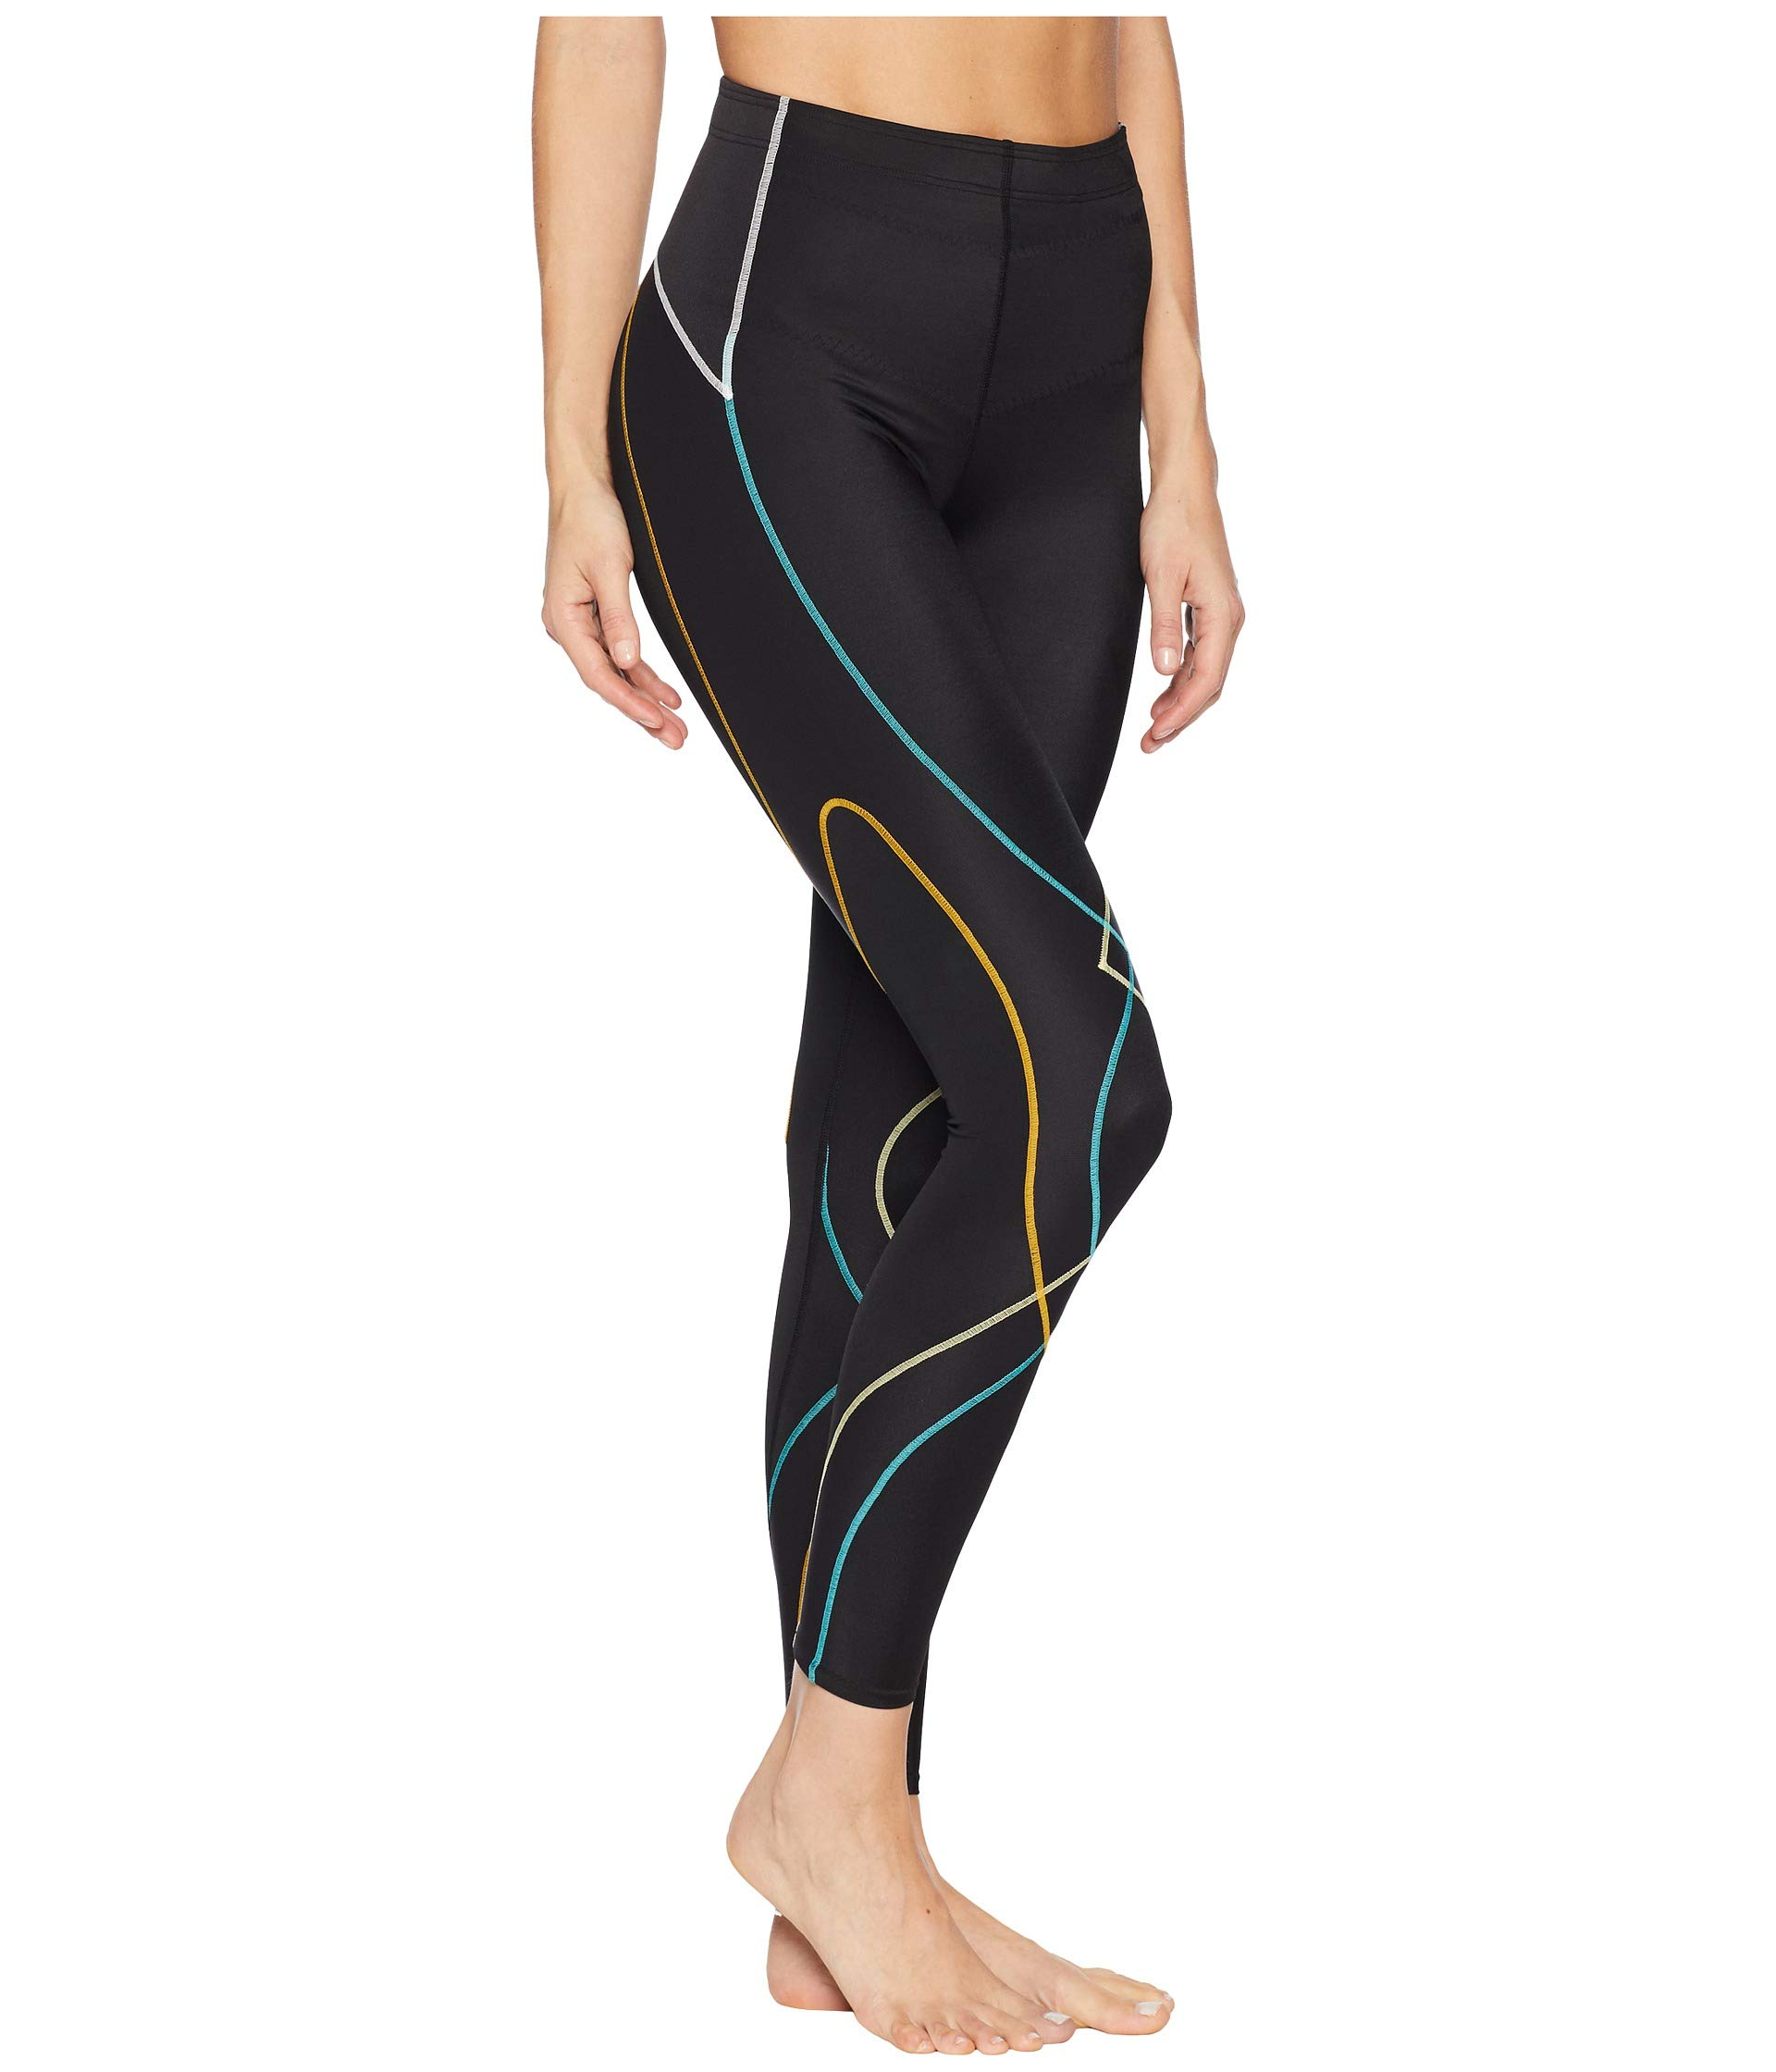 CW-X Women's Stabilyx Joint Support Compression Tight, Black/Bright Rainbow, X-Small by CW-X (Image #5)